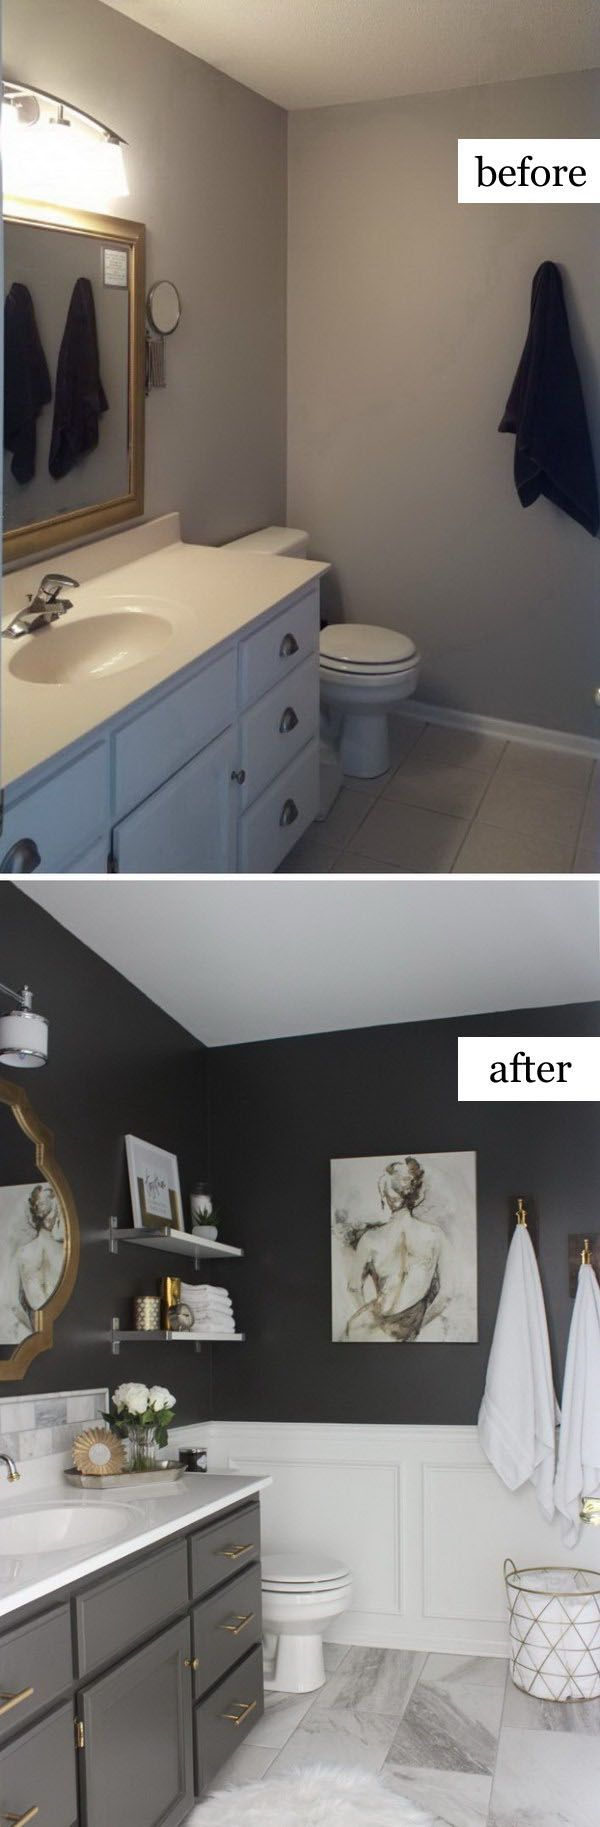 Small bathroom ideas pinterest - Awesome Before And After Makeovers 20 Most Beautiful Bathroom Remodeling Ideas